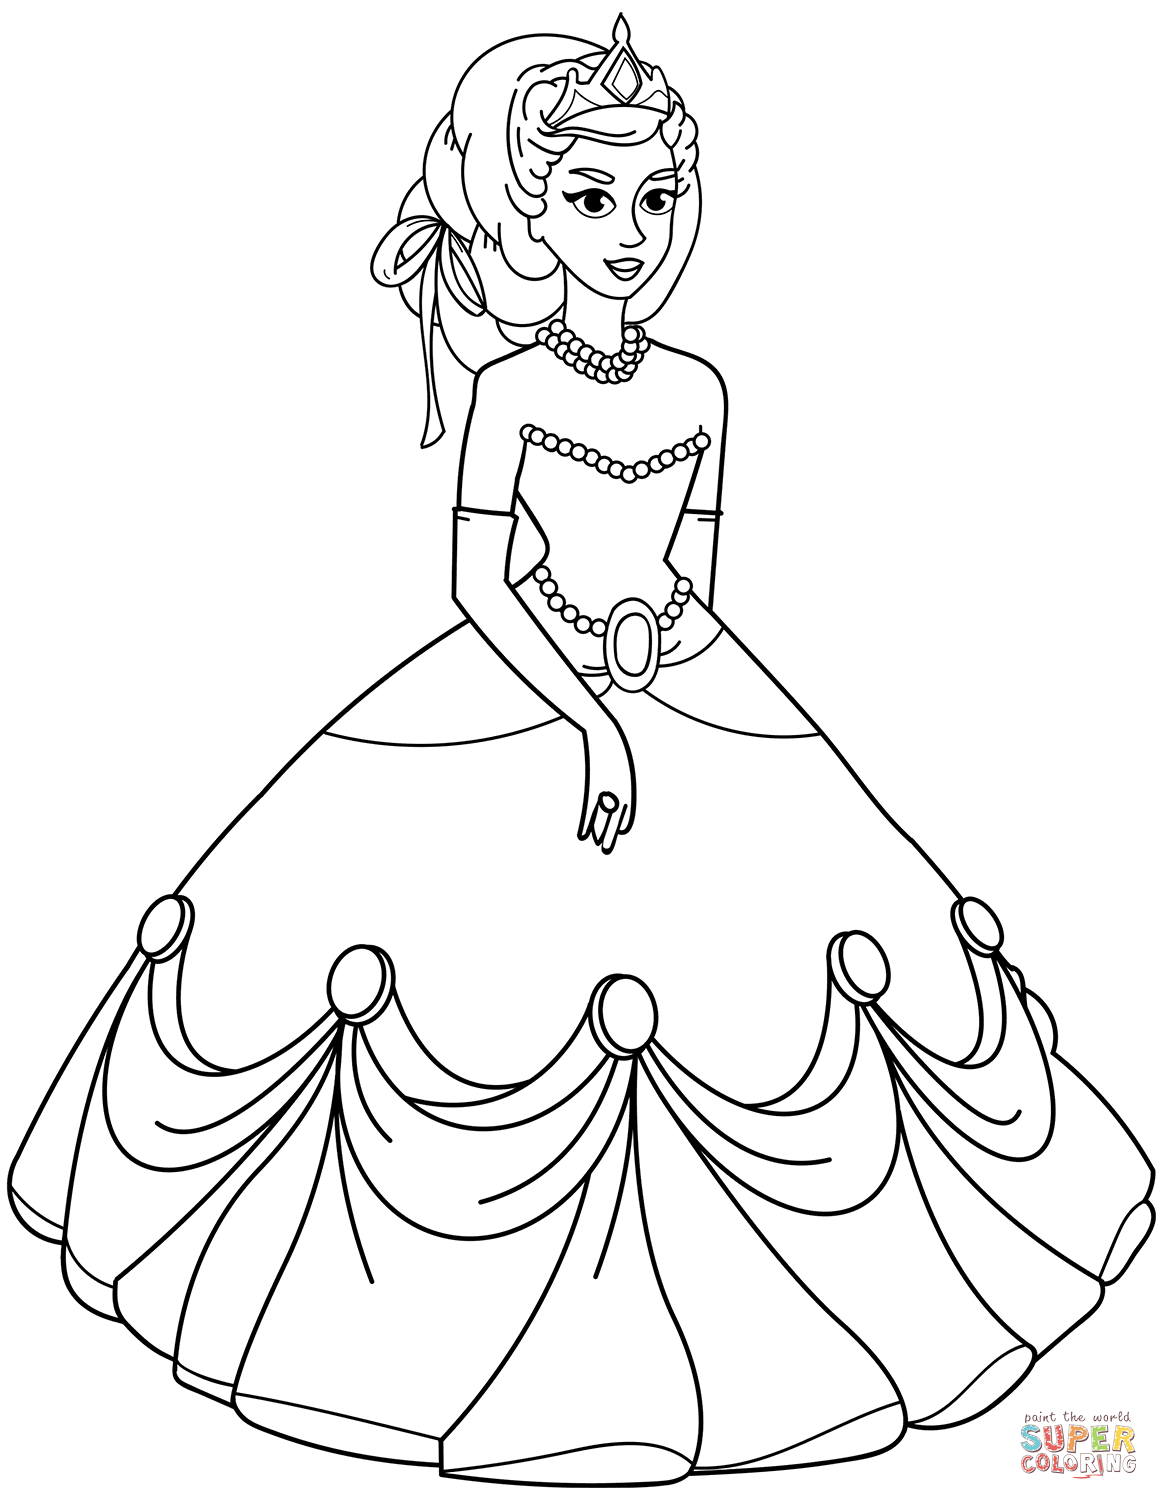 Real Princess Coloring Pages 2070499 Png Images Pngio